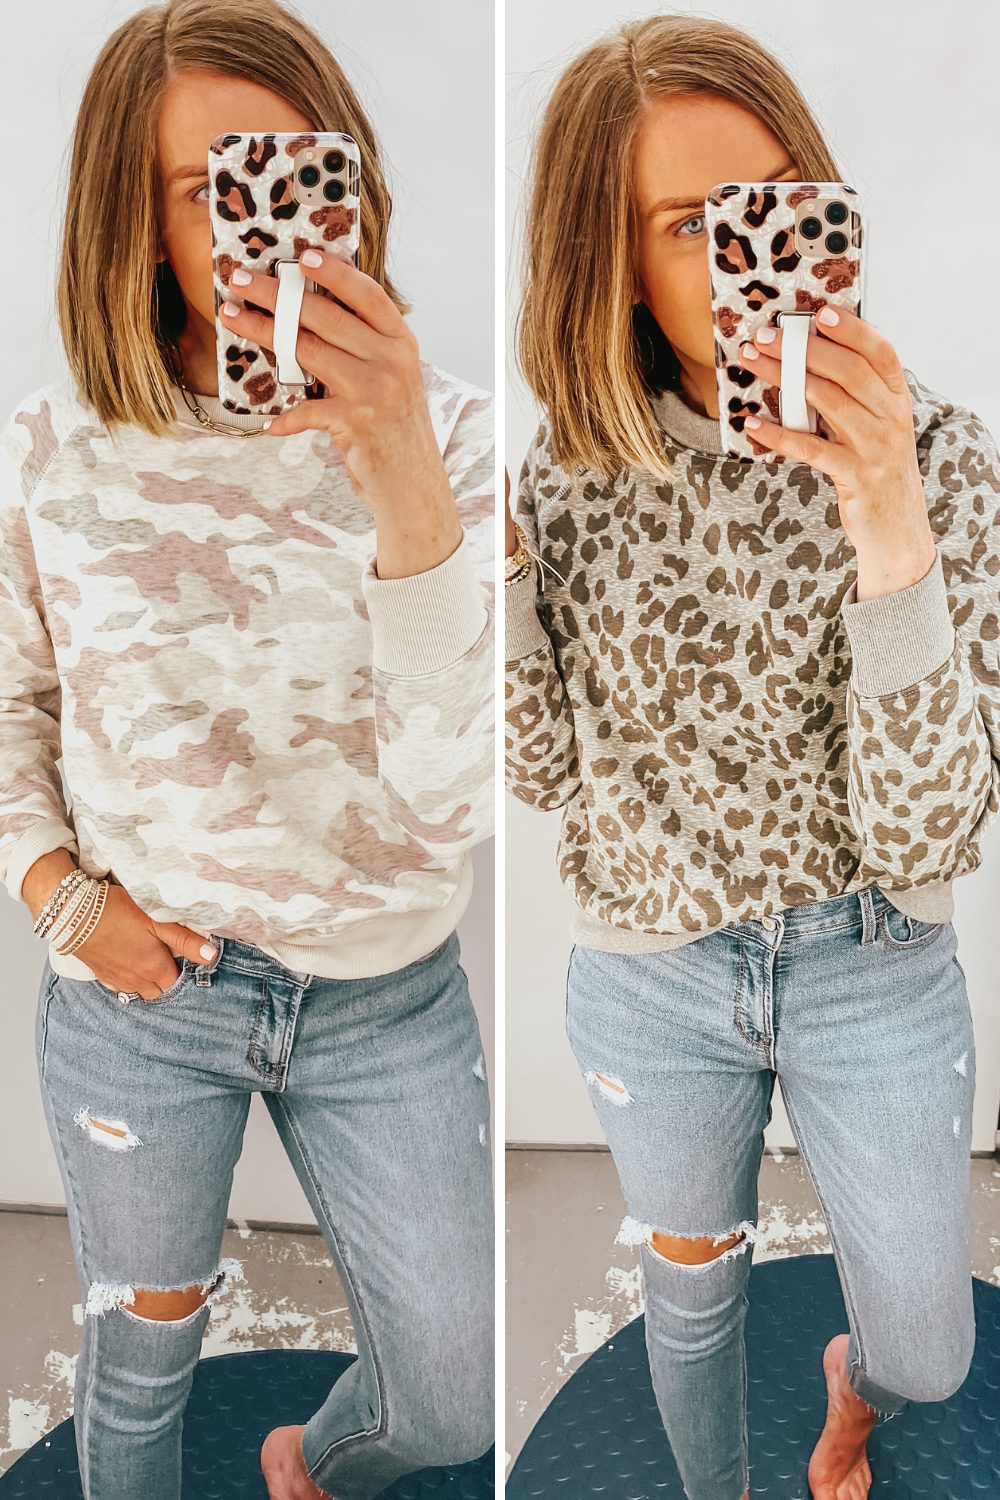 Old-Navy-Fall-Fashion-cropped-sweatshirts